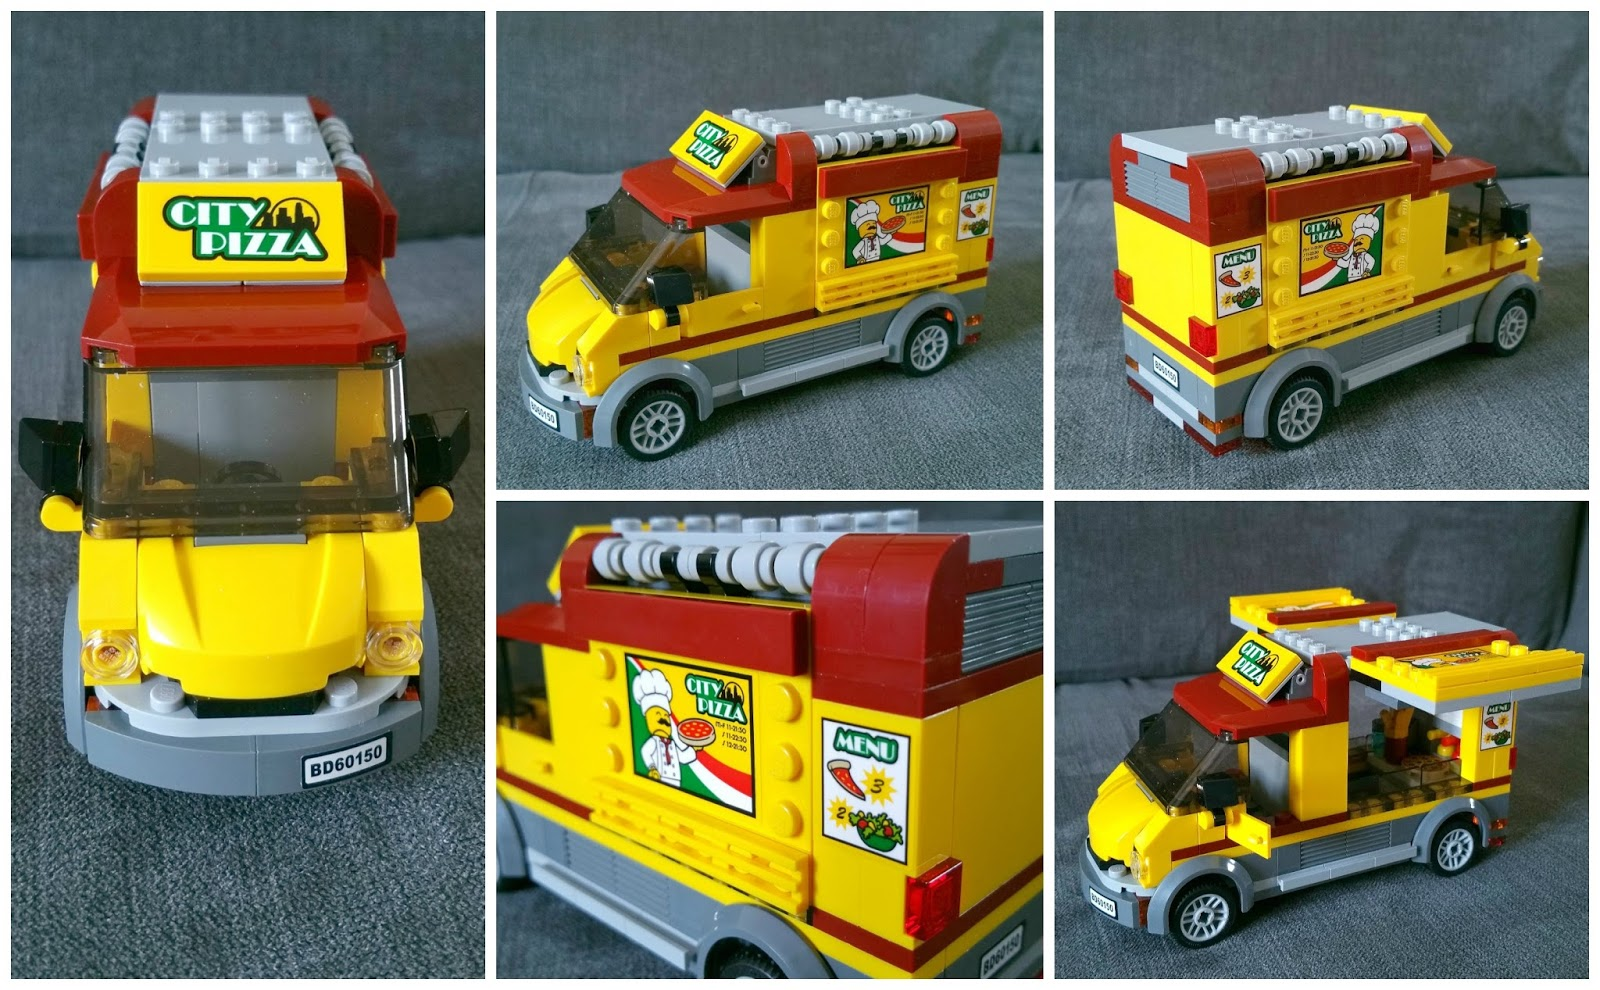 LEGO City Police, LEGO City Great Vehicles, My City 2